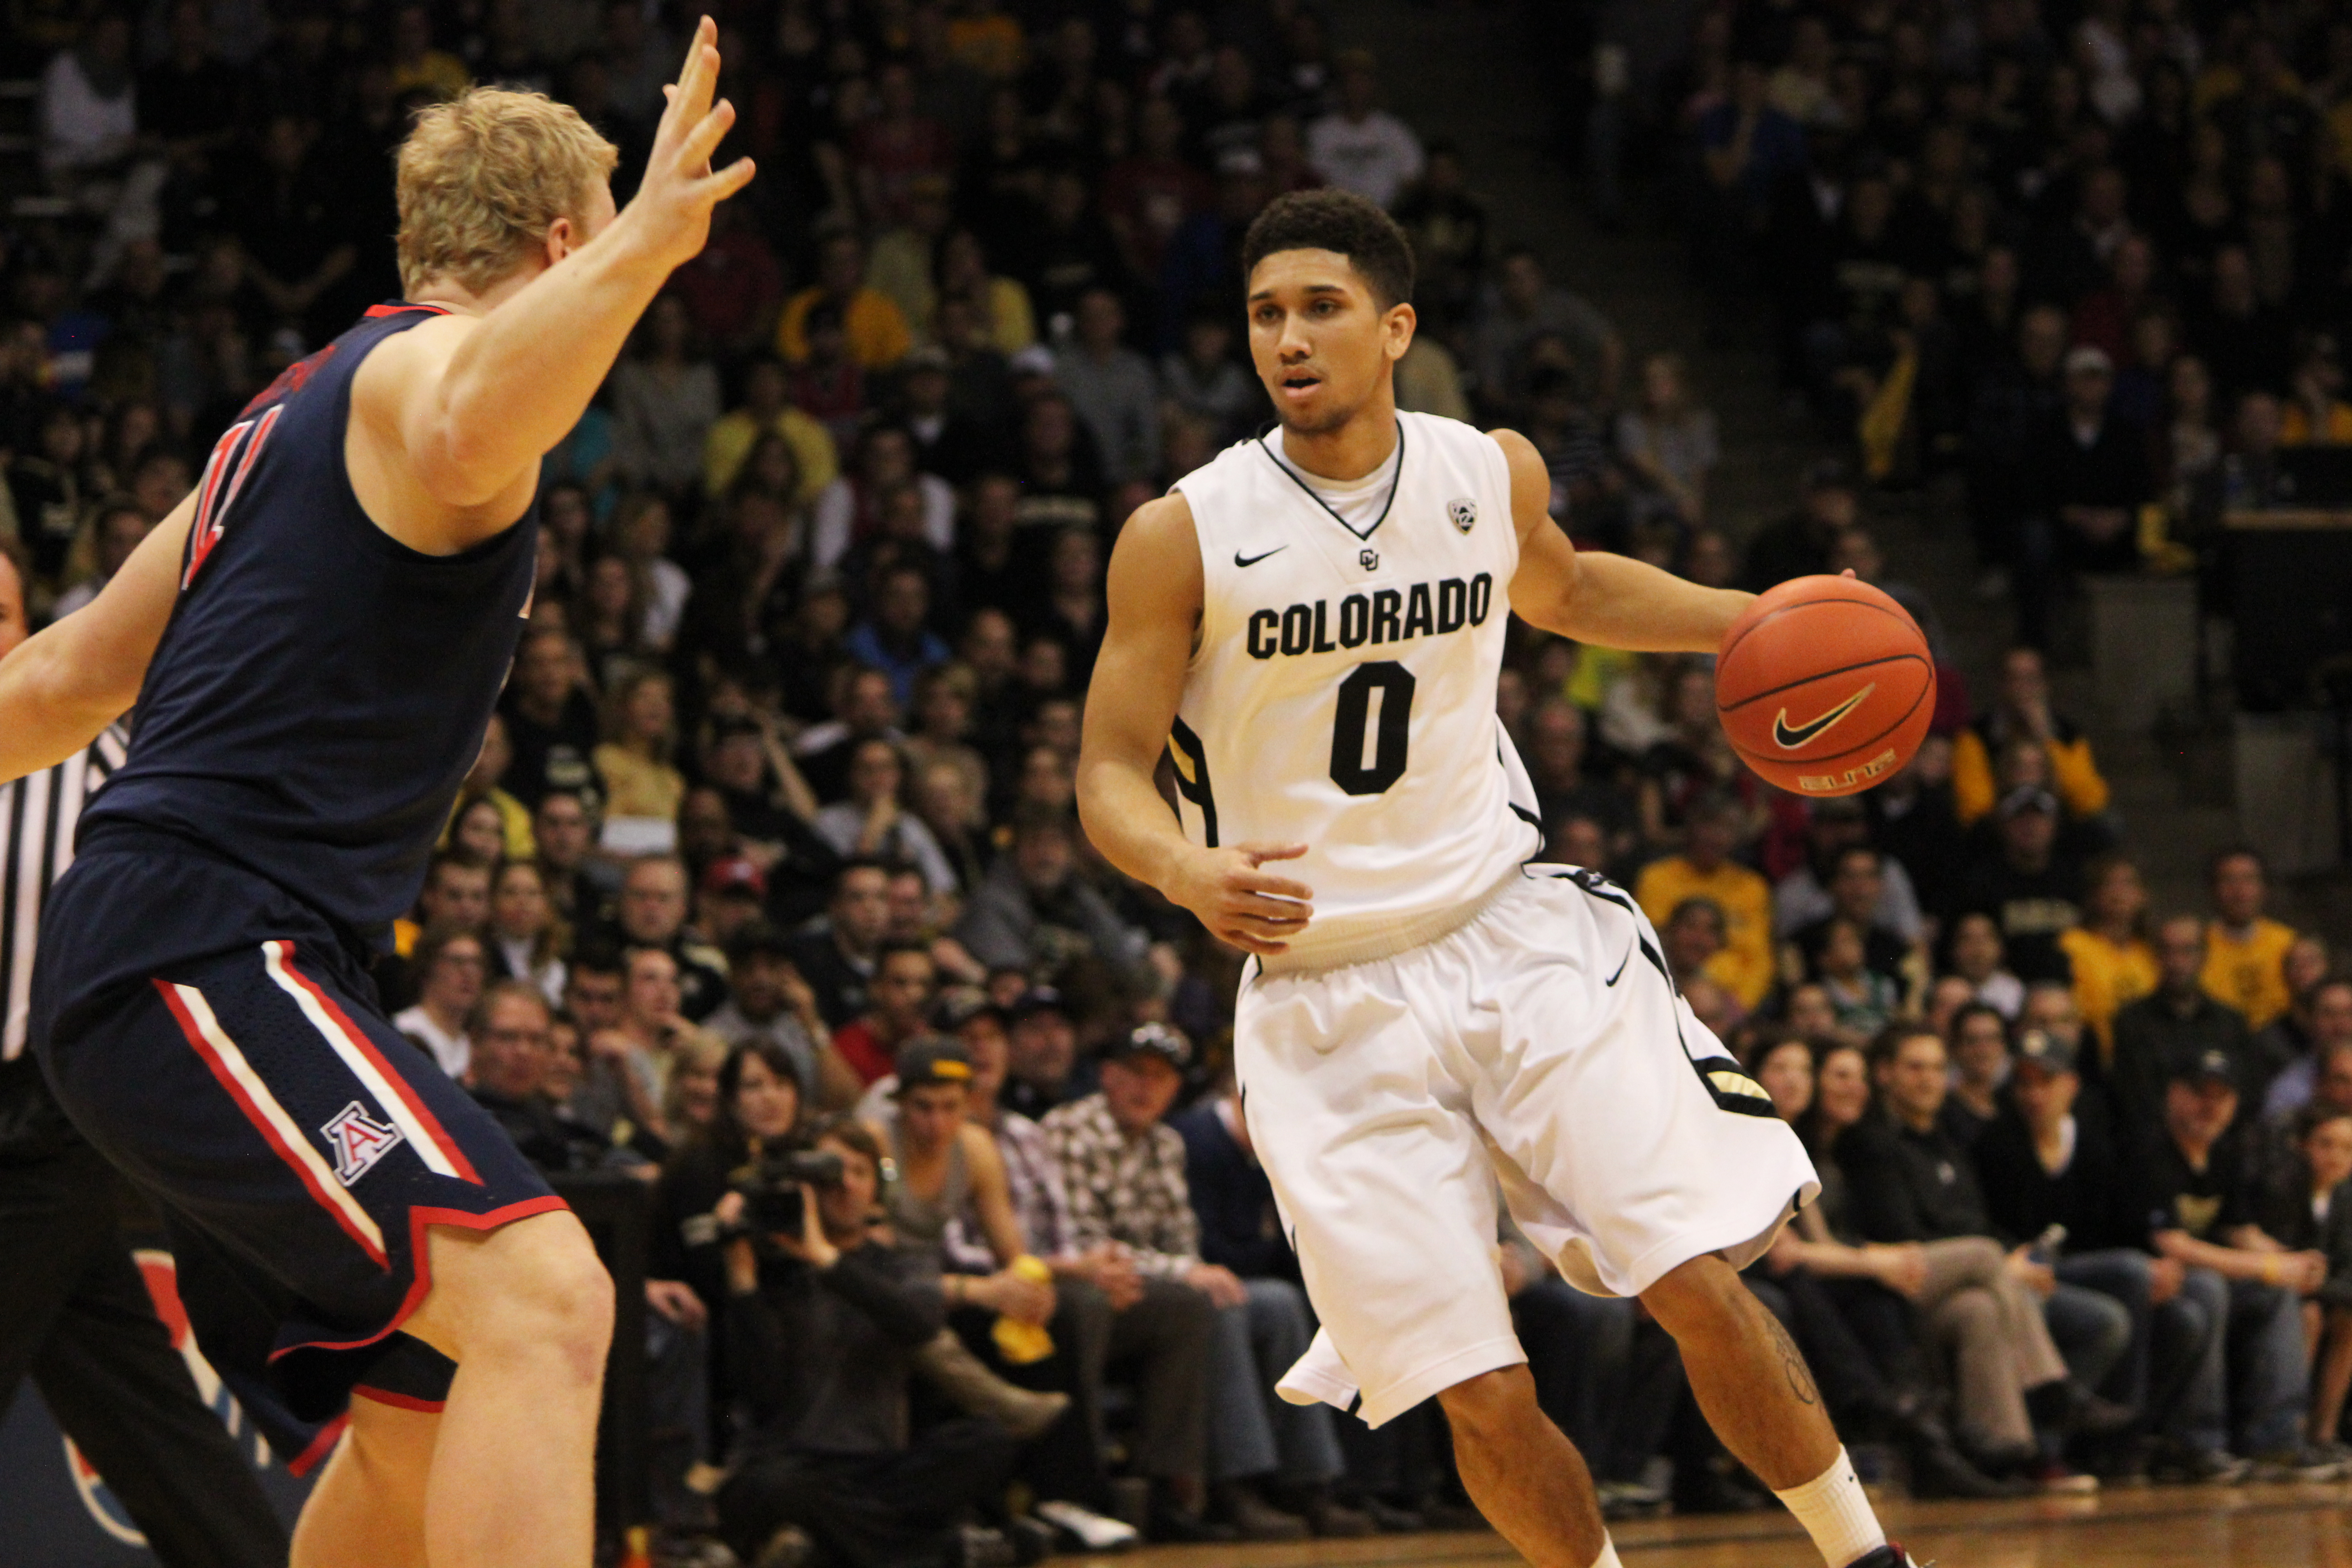 Colorado guard Askia Booker looks to drive into the lane against Arizona defender Kyryl Natyazhko on Saturday afternoon. Booker scored 9 points on the night, making 4 of 6 free throws. (Kai Casey/CU Independent)